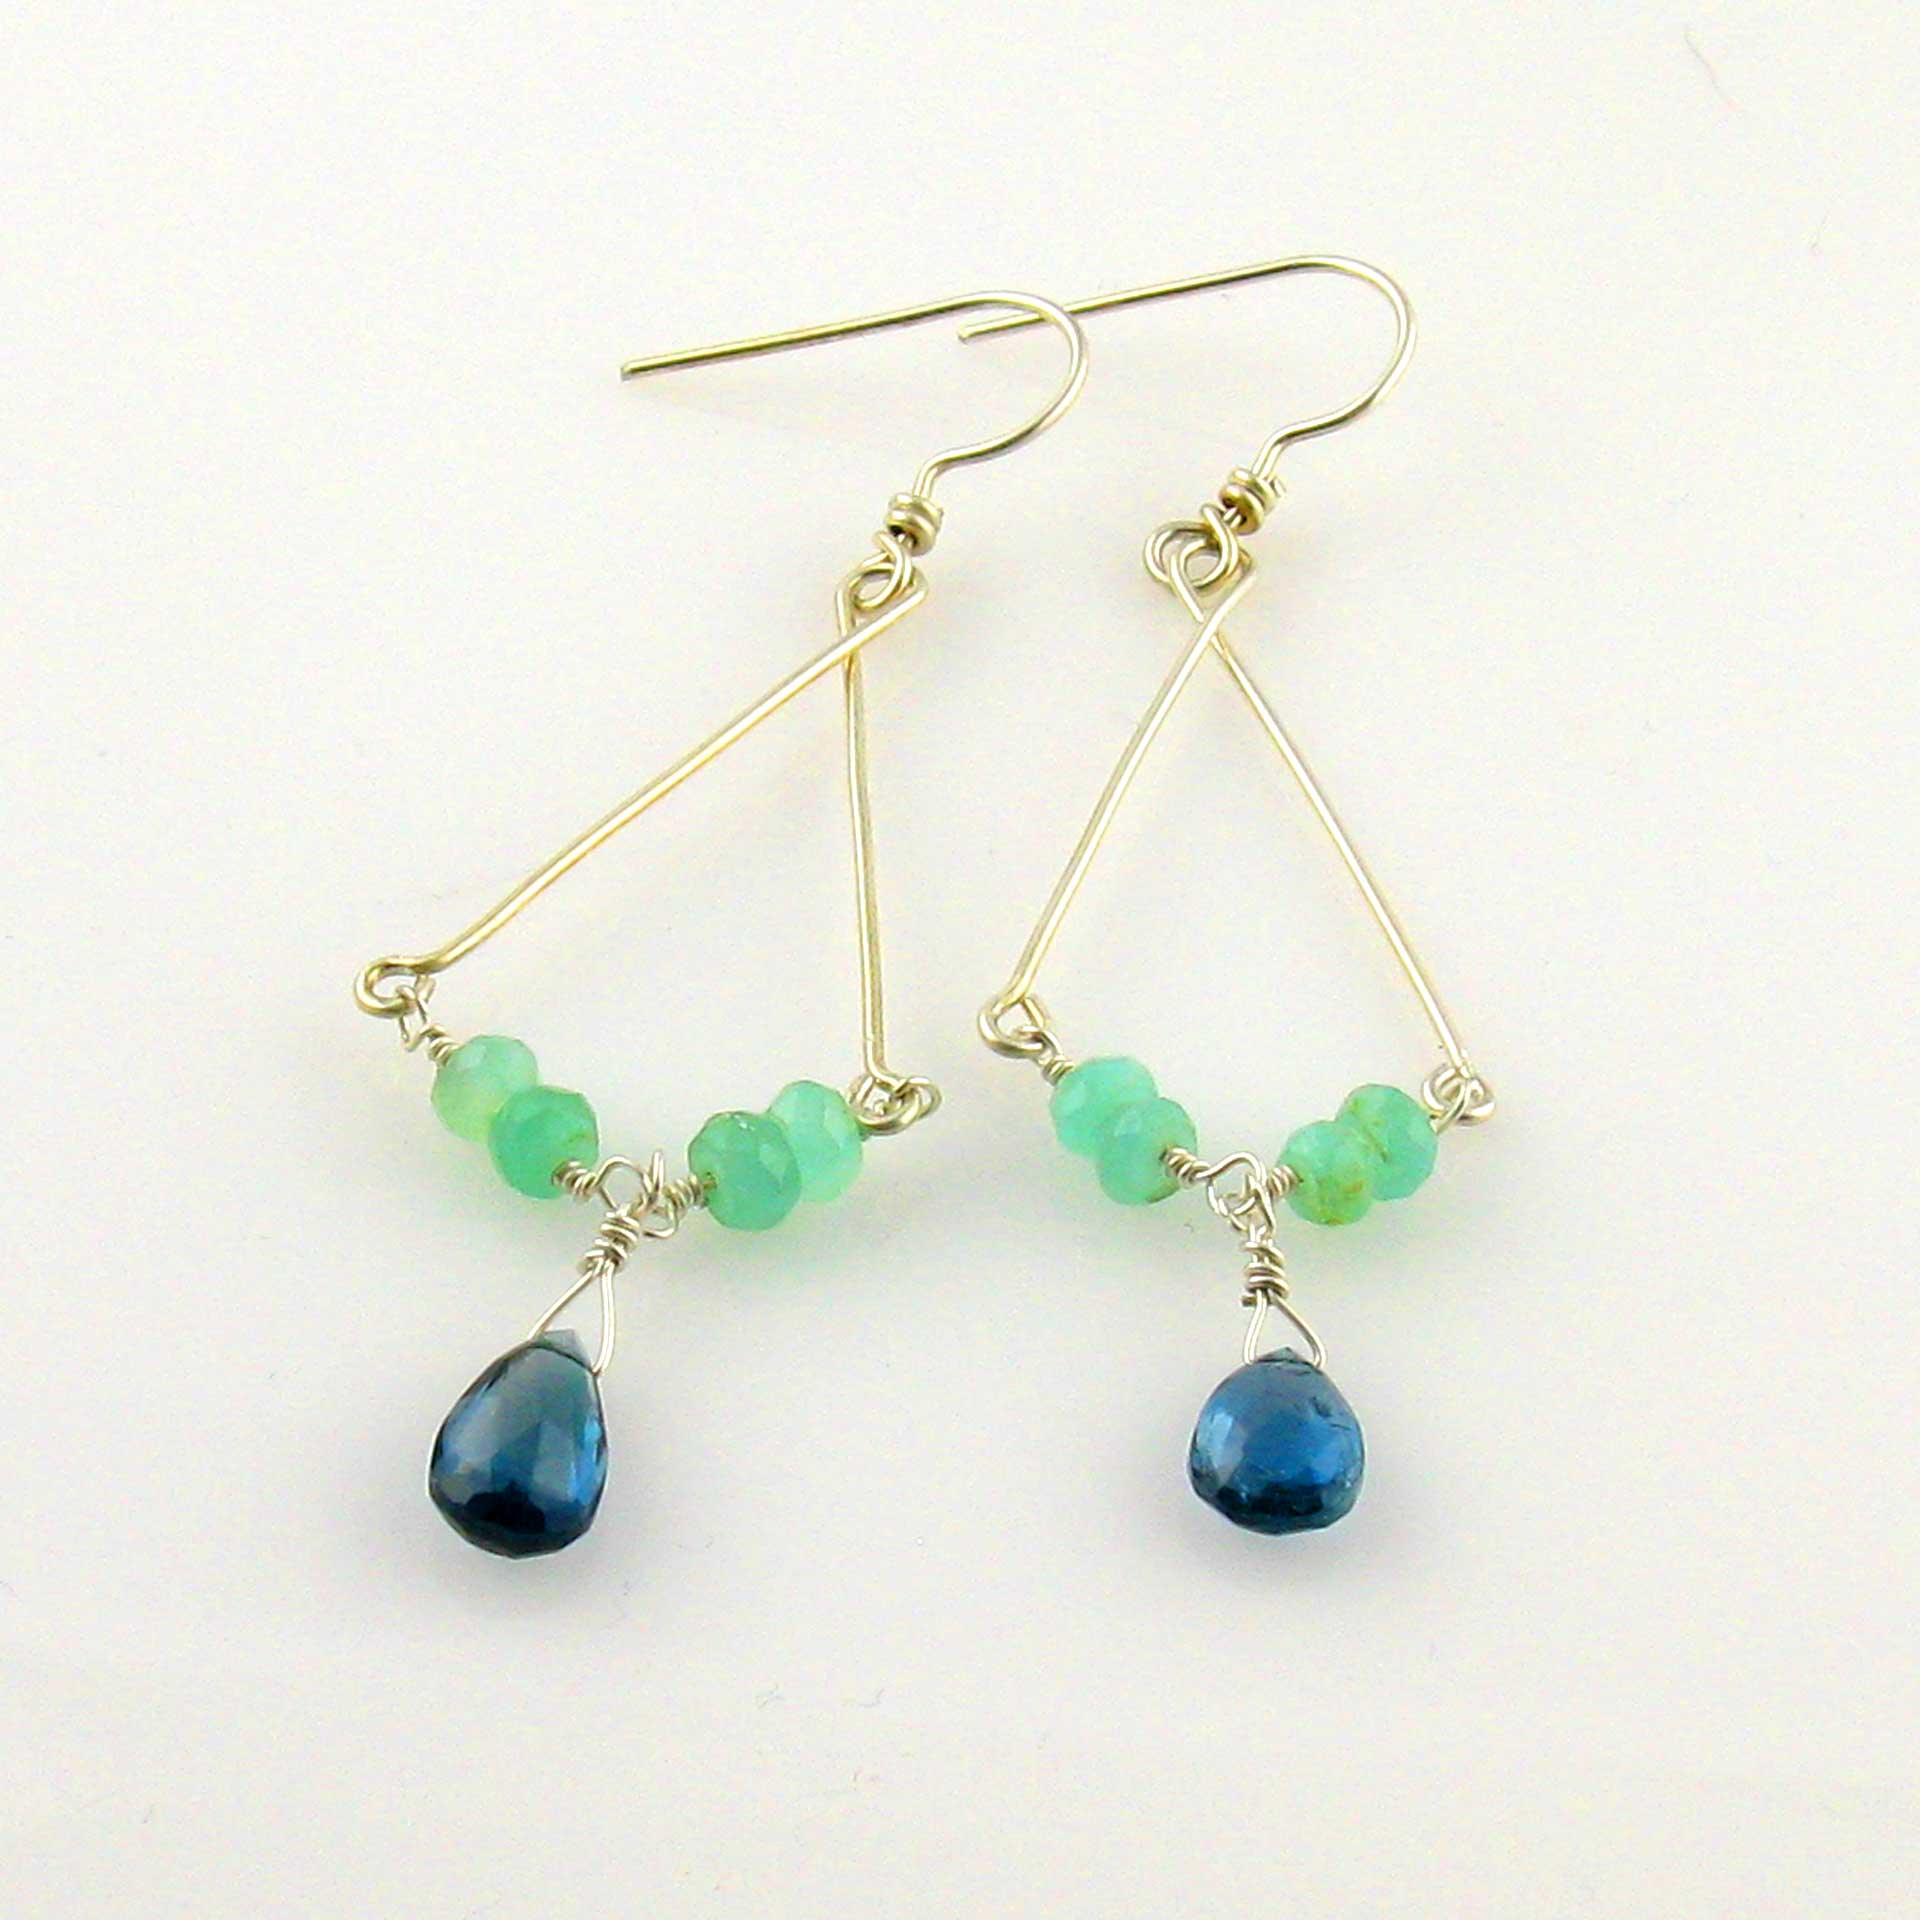 Peruvian Opal Chandelier Earrings With Blue Topaz Drops